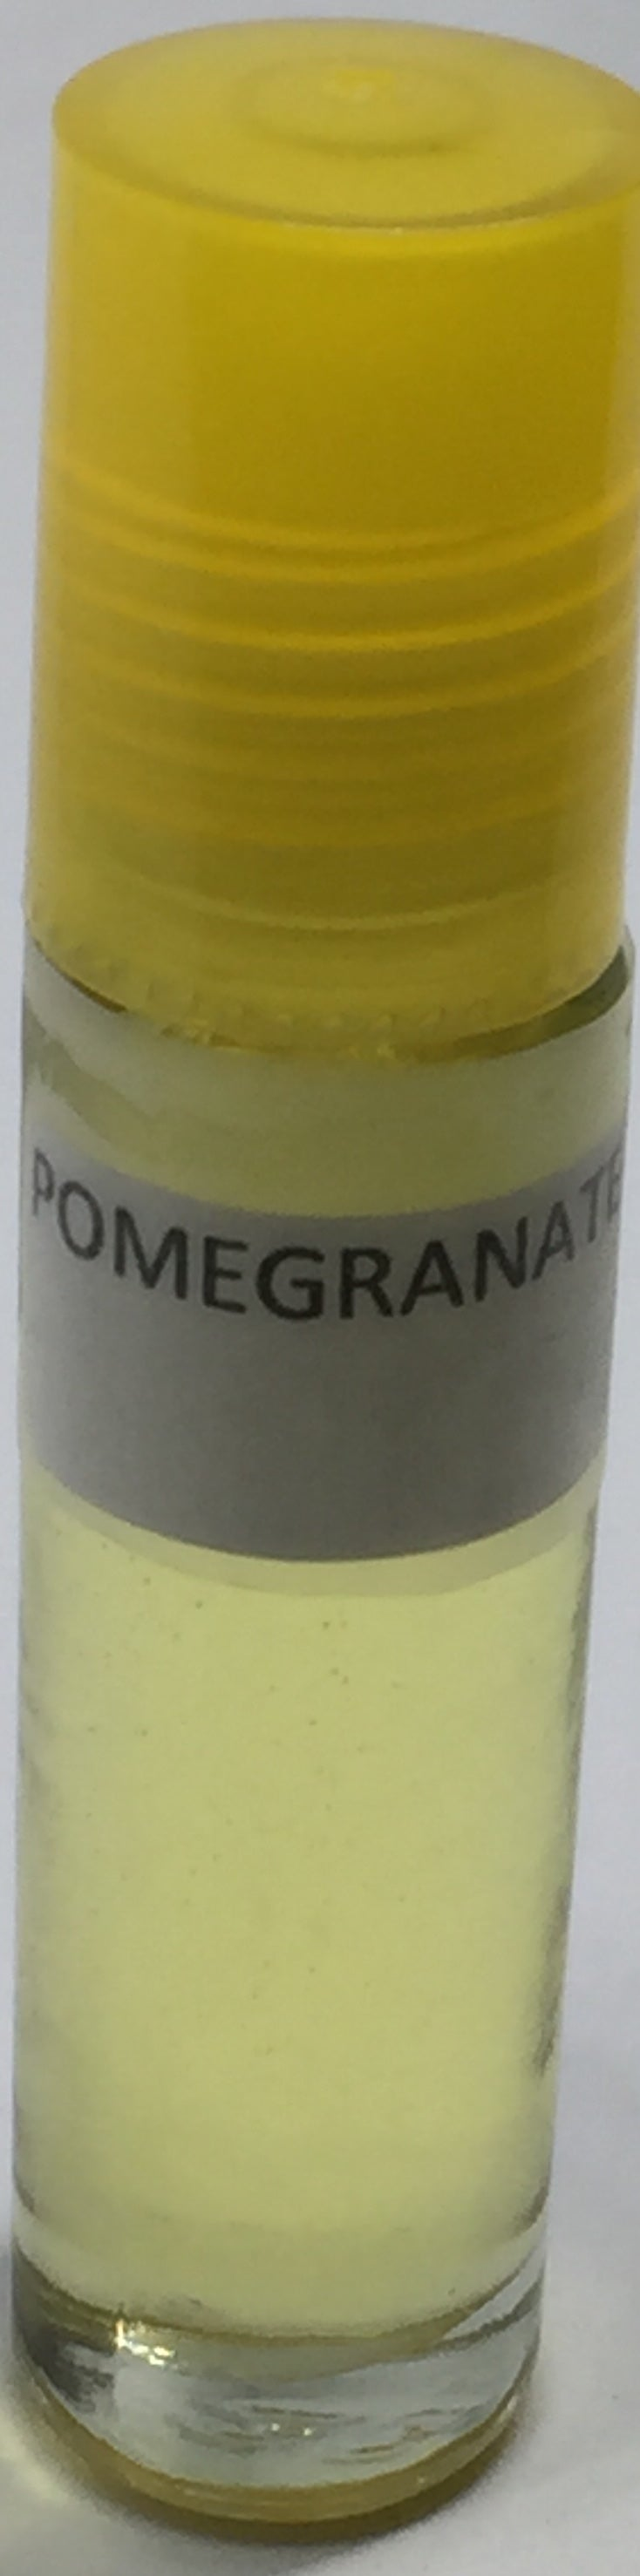 Pomegranate Twist: Fragrance(Perfume)Body Oil